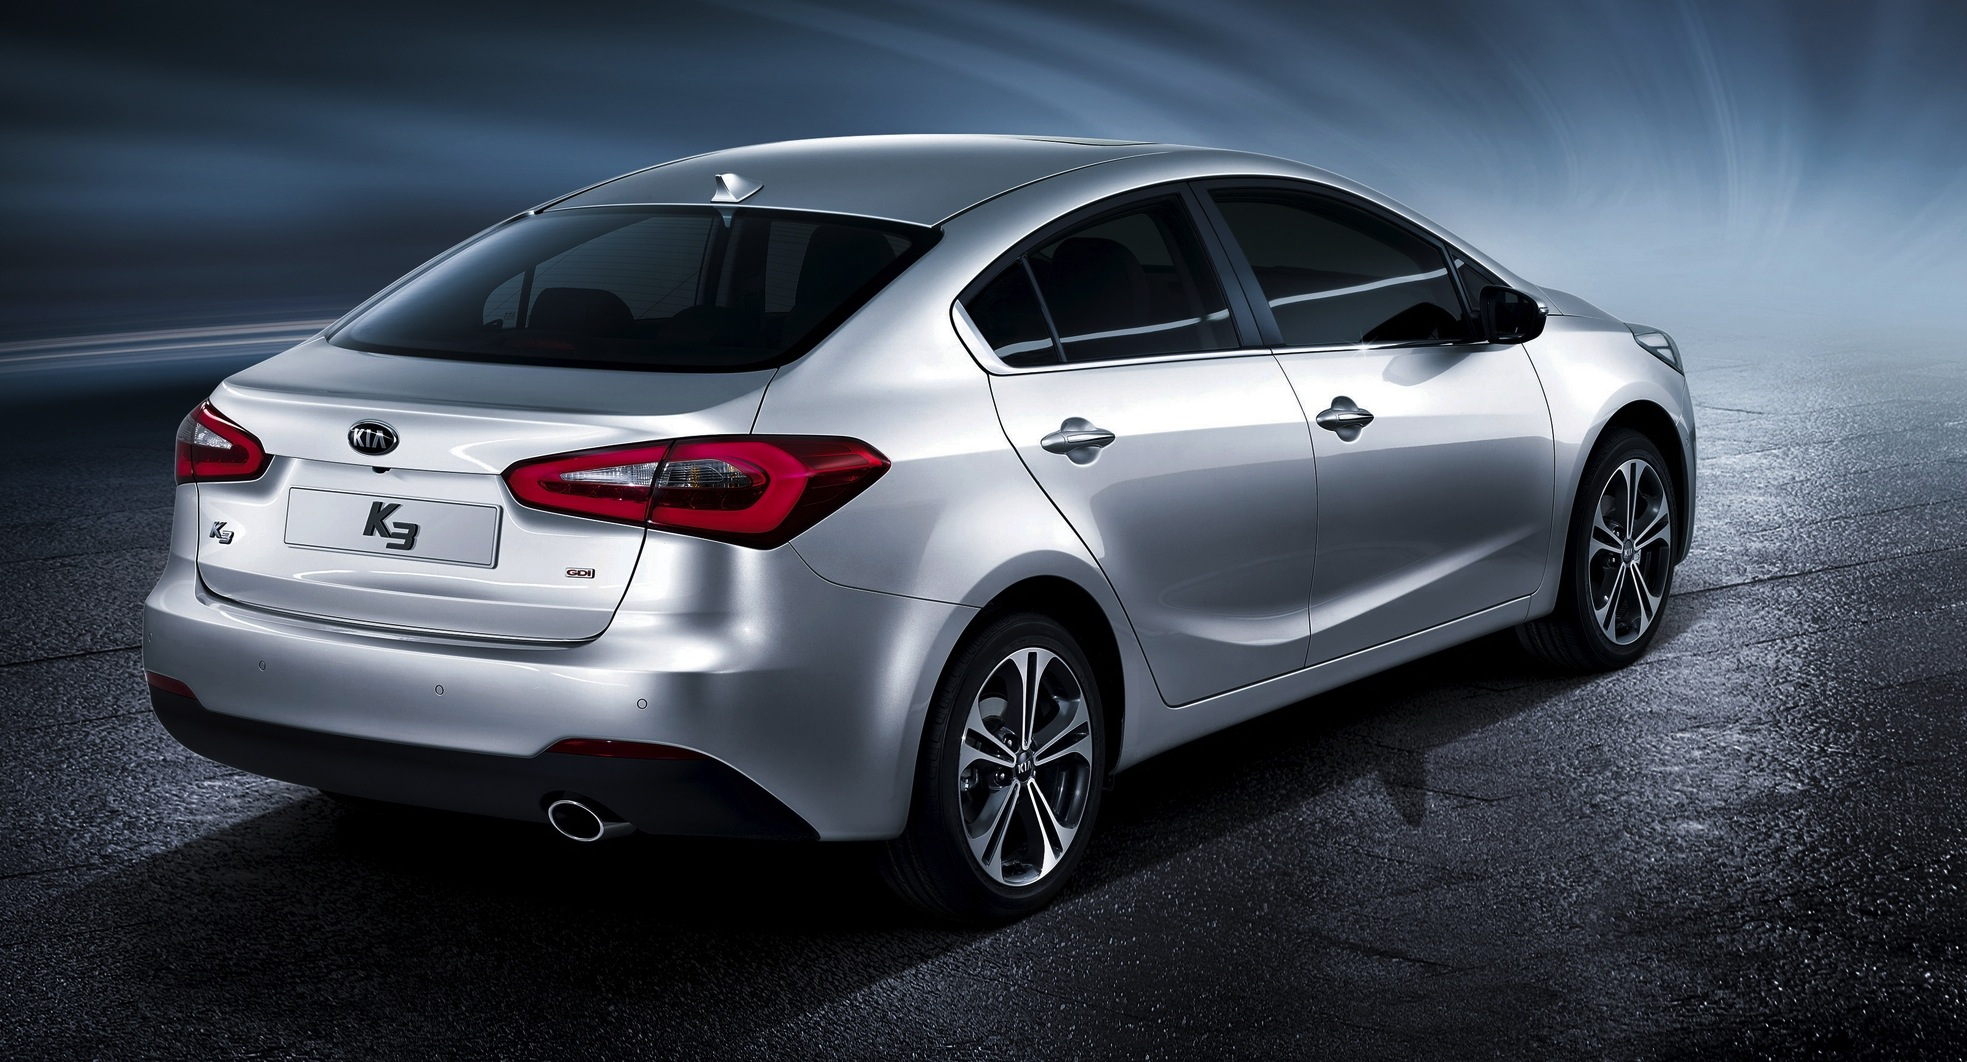 Kia Forte K3 Official Exterior Images Released